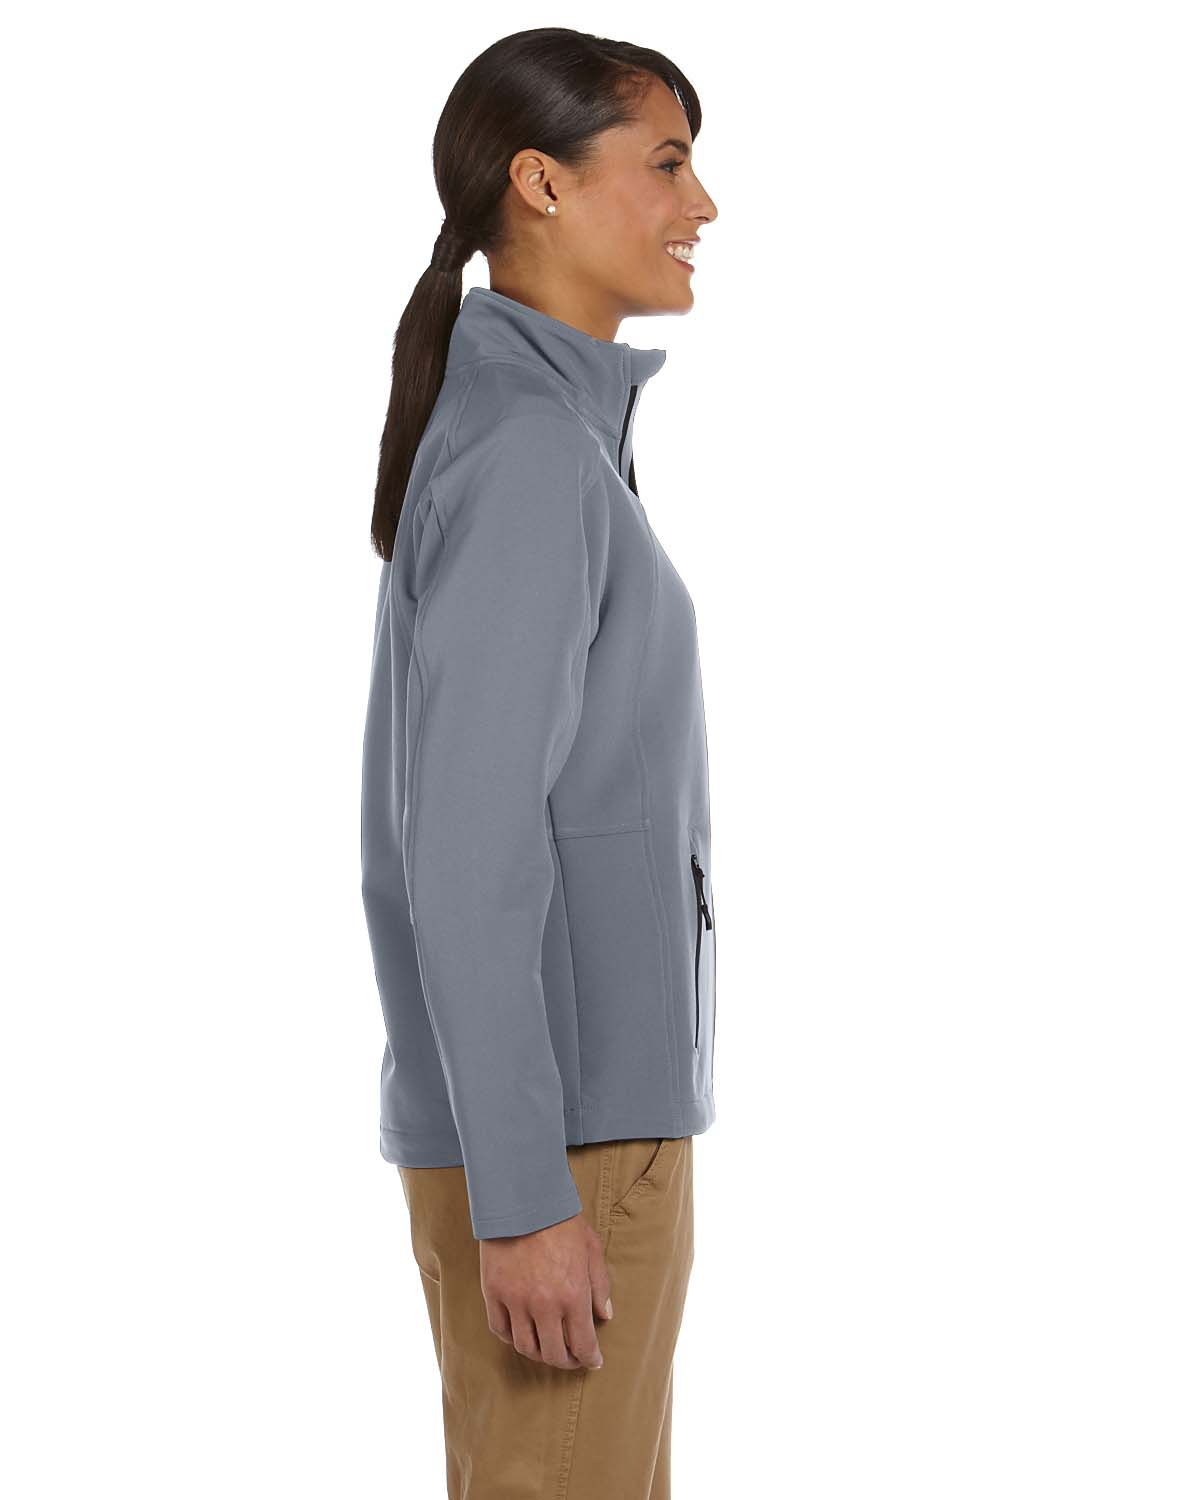 'Devon & Jones D945W Ladies' Doubleweave Tech-Shell Duplex Jacket'